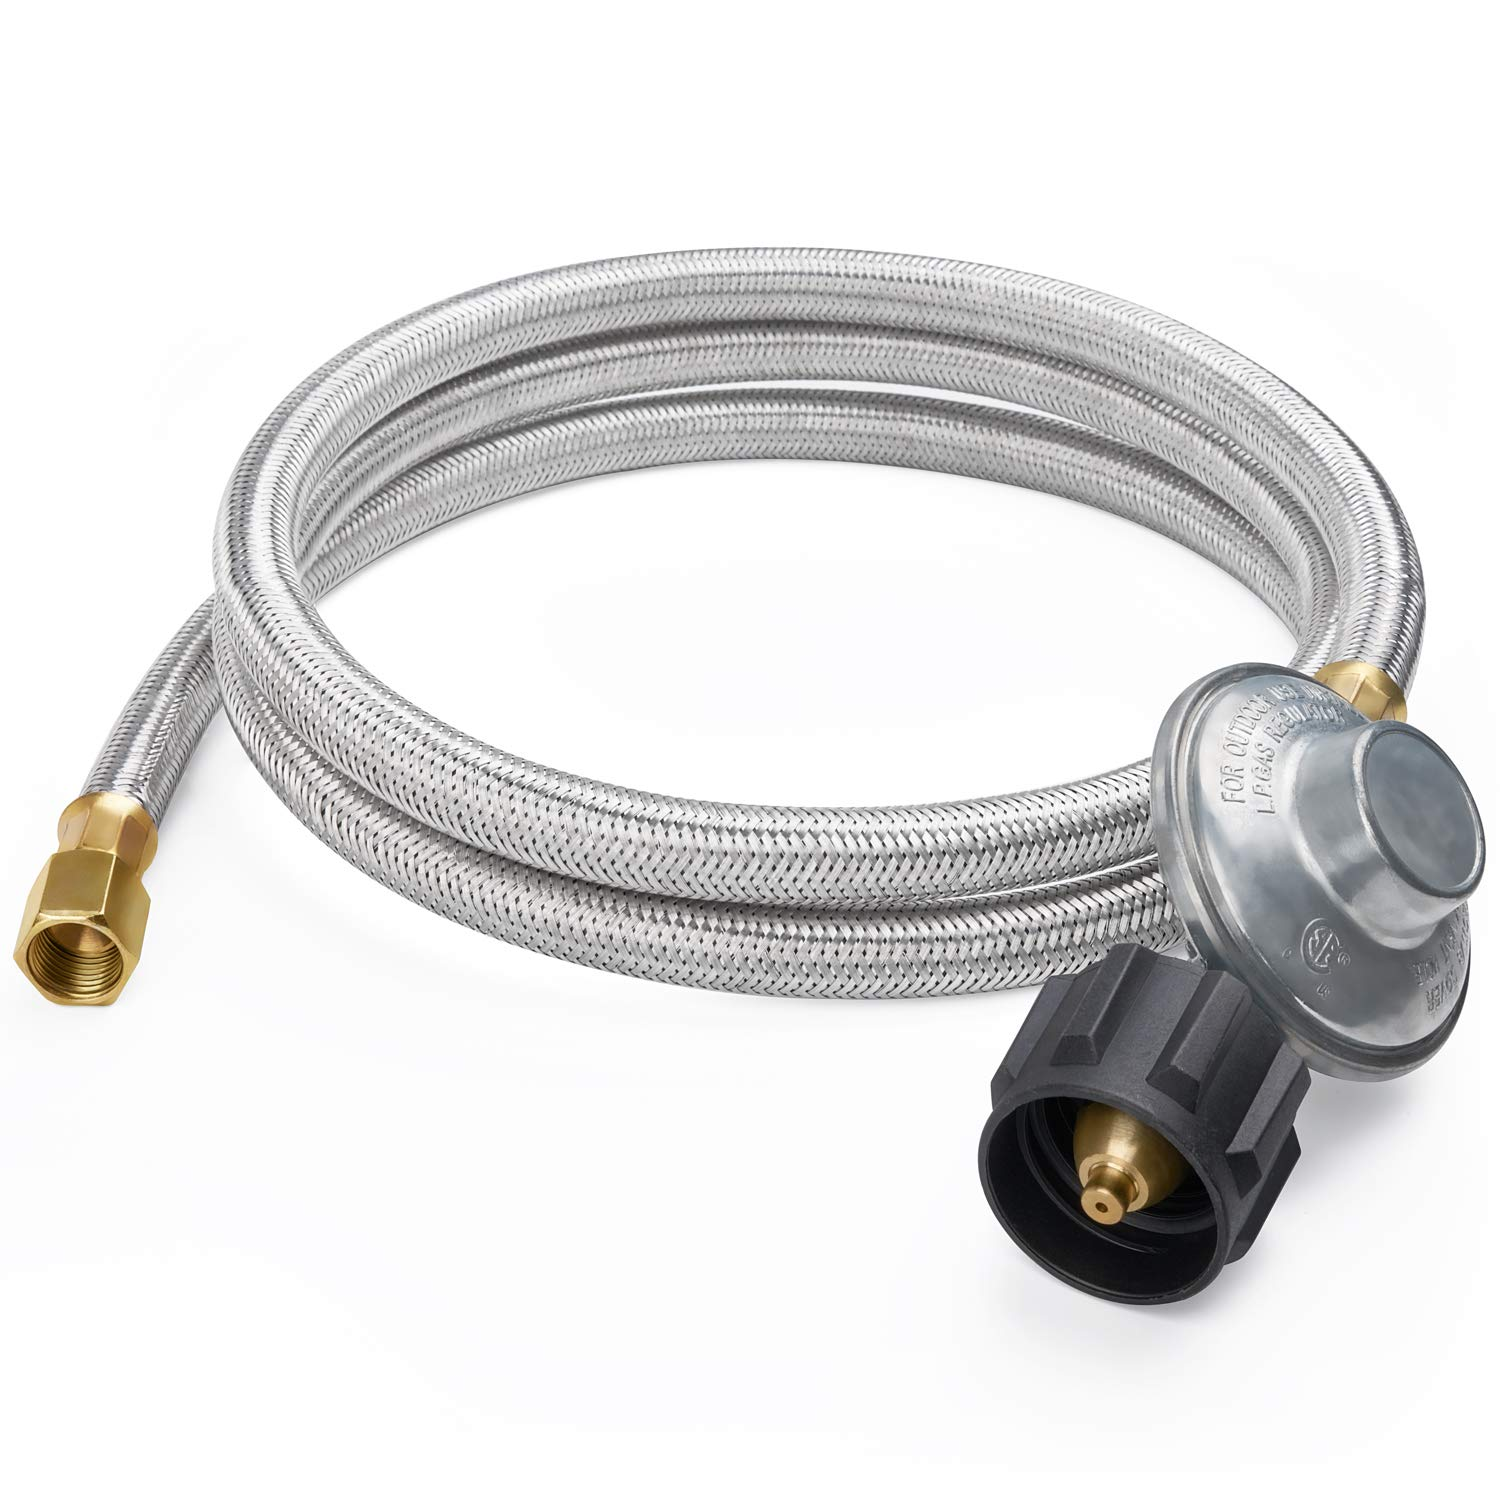 SHINESTAR 6FT Stainless Braided Propane Regulator with Hose, Low Pressure LP Hose and Regulator for QCC1/Type 1 Tank and Gas Grill, Smoker, Propane Fire Pit, Heater, 3/8 Female Flare Nut, CSA